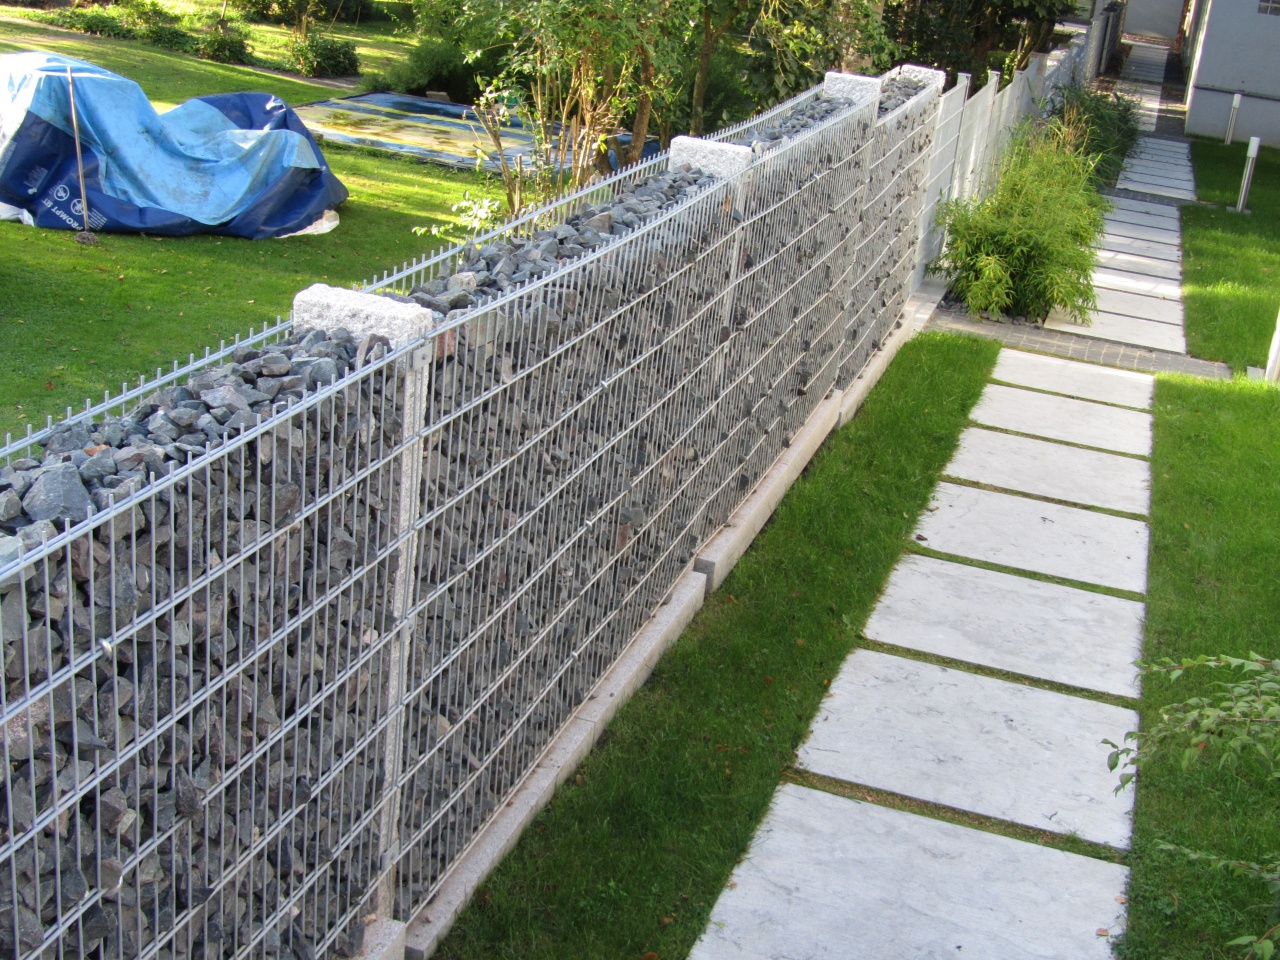 1000 images about gabion walls on pinterest planters gabion retaining wall and thames barrier. Black Bedroom Furniture Sets. Home Design Ideas